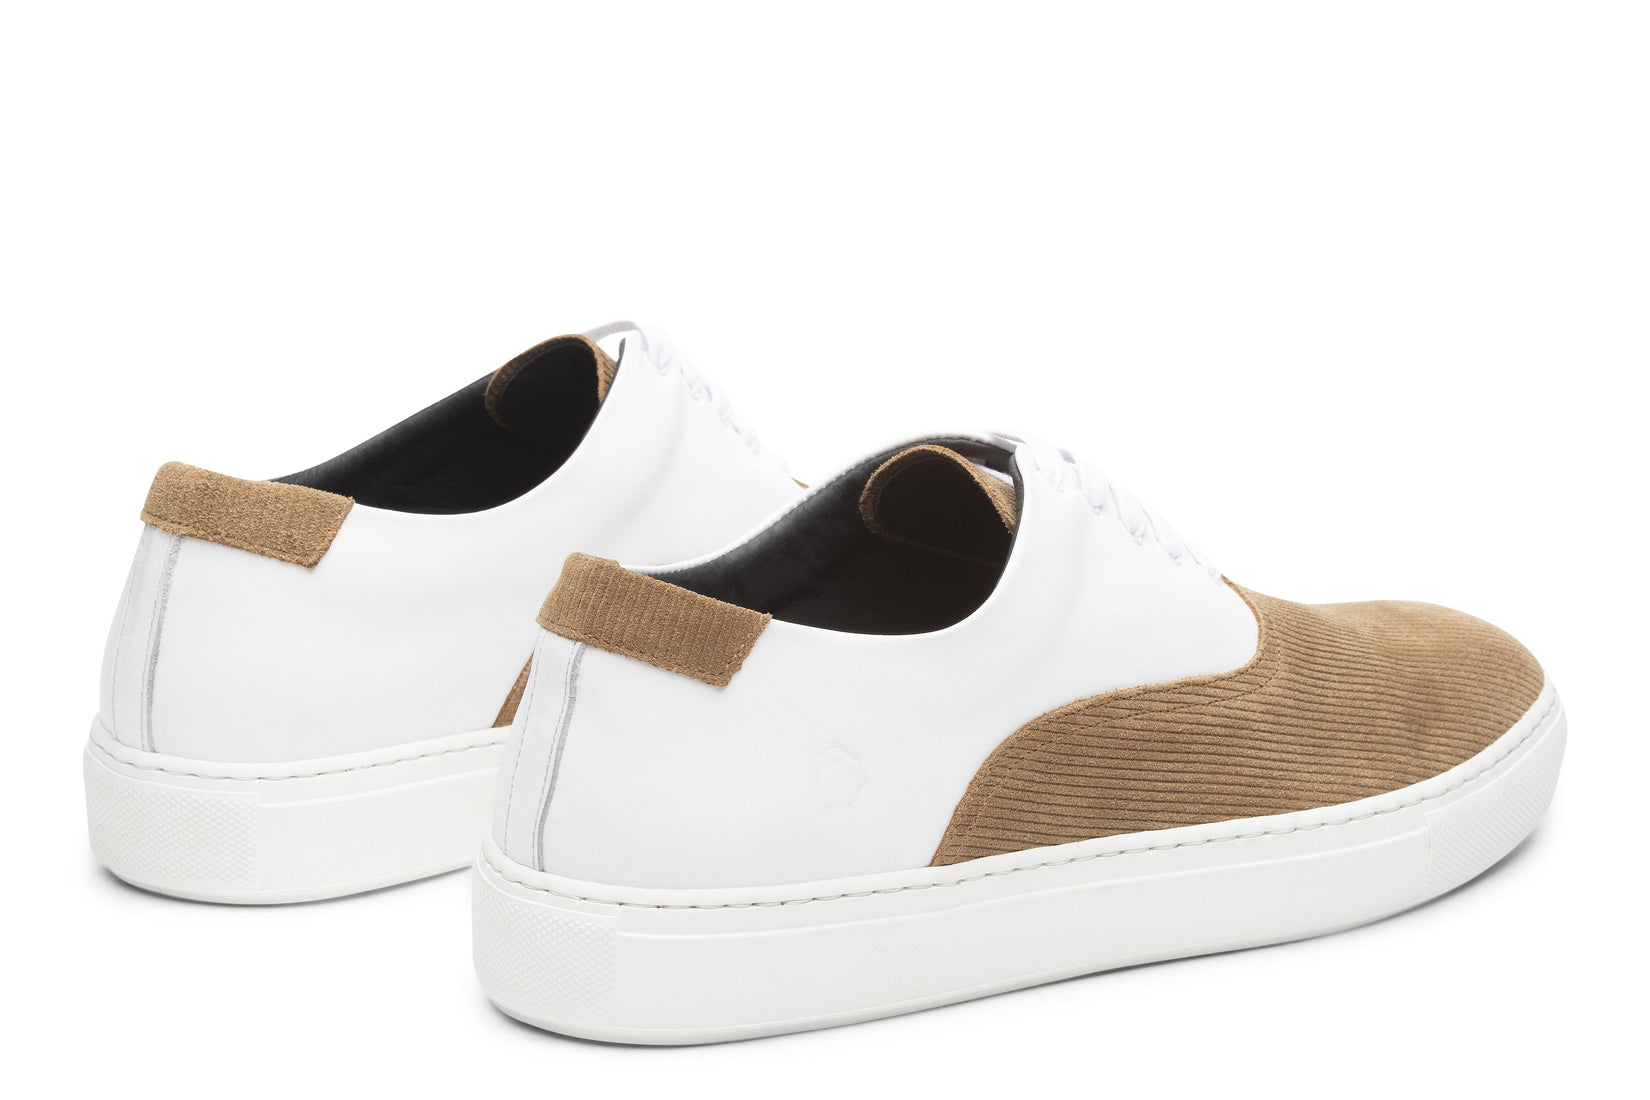 Sunday Two-Tone Skater Sneaker in White/Caramel